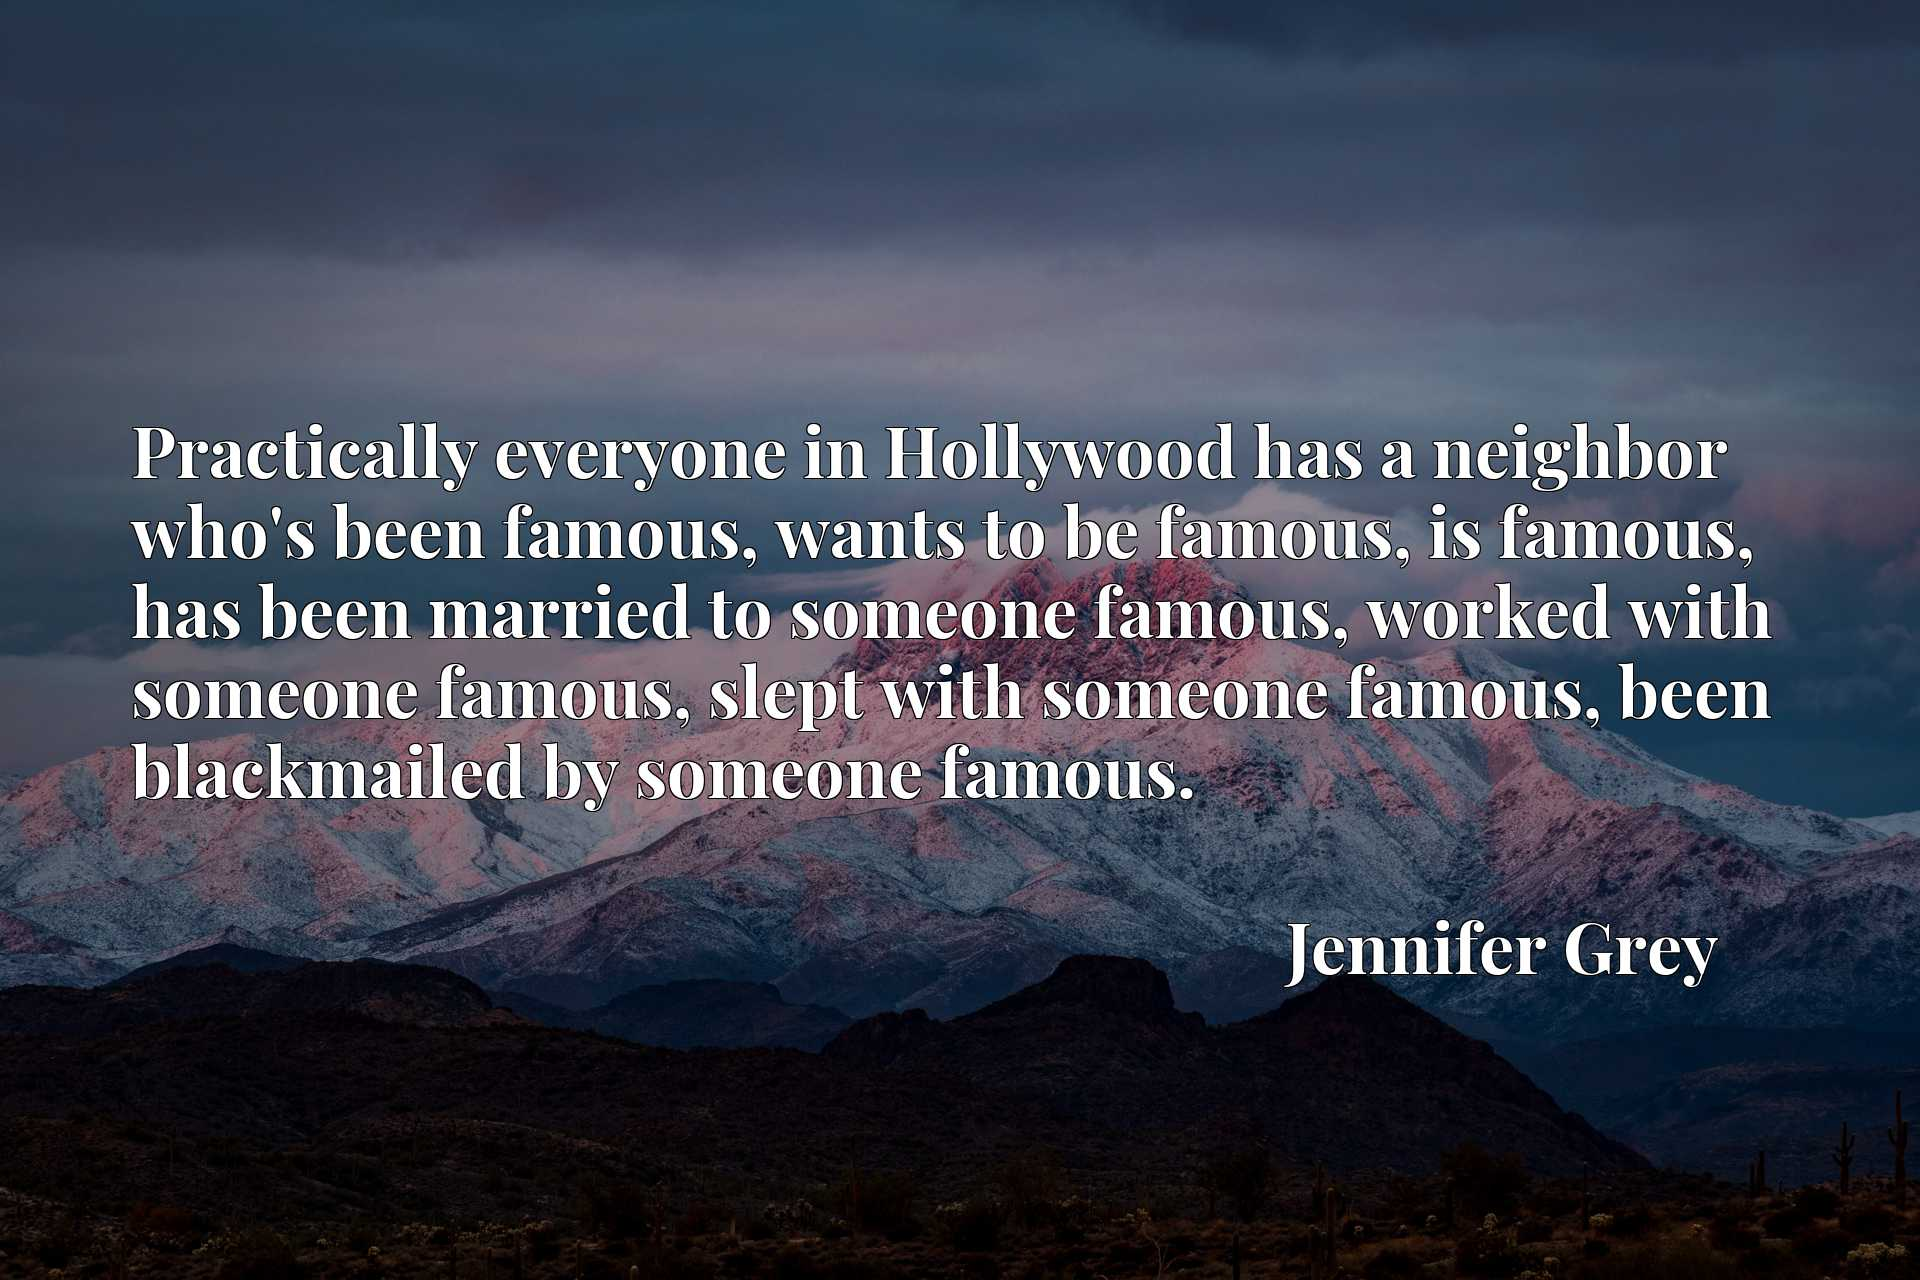 Practically everyone in Hollywood has a neighbor who's been famous, wants to be famous, is famous, has been married to someone famous, worked with someone famous, slept with someone famous, been blackmailed by someone famous.